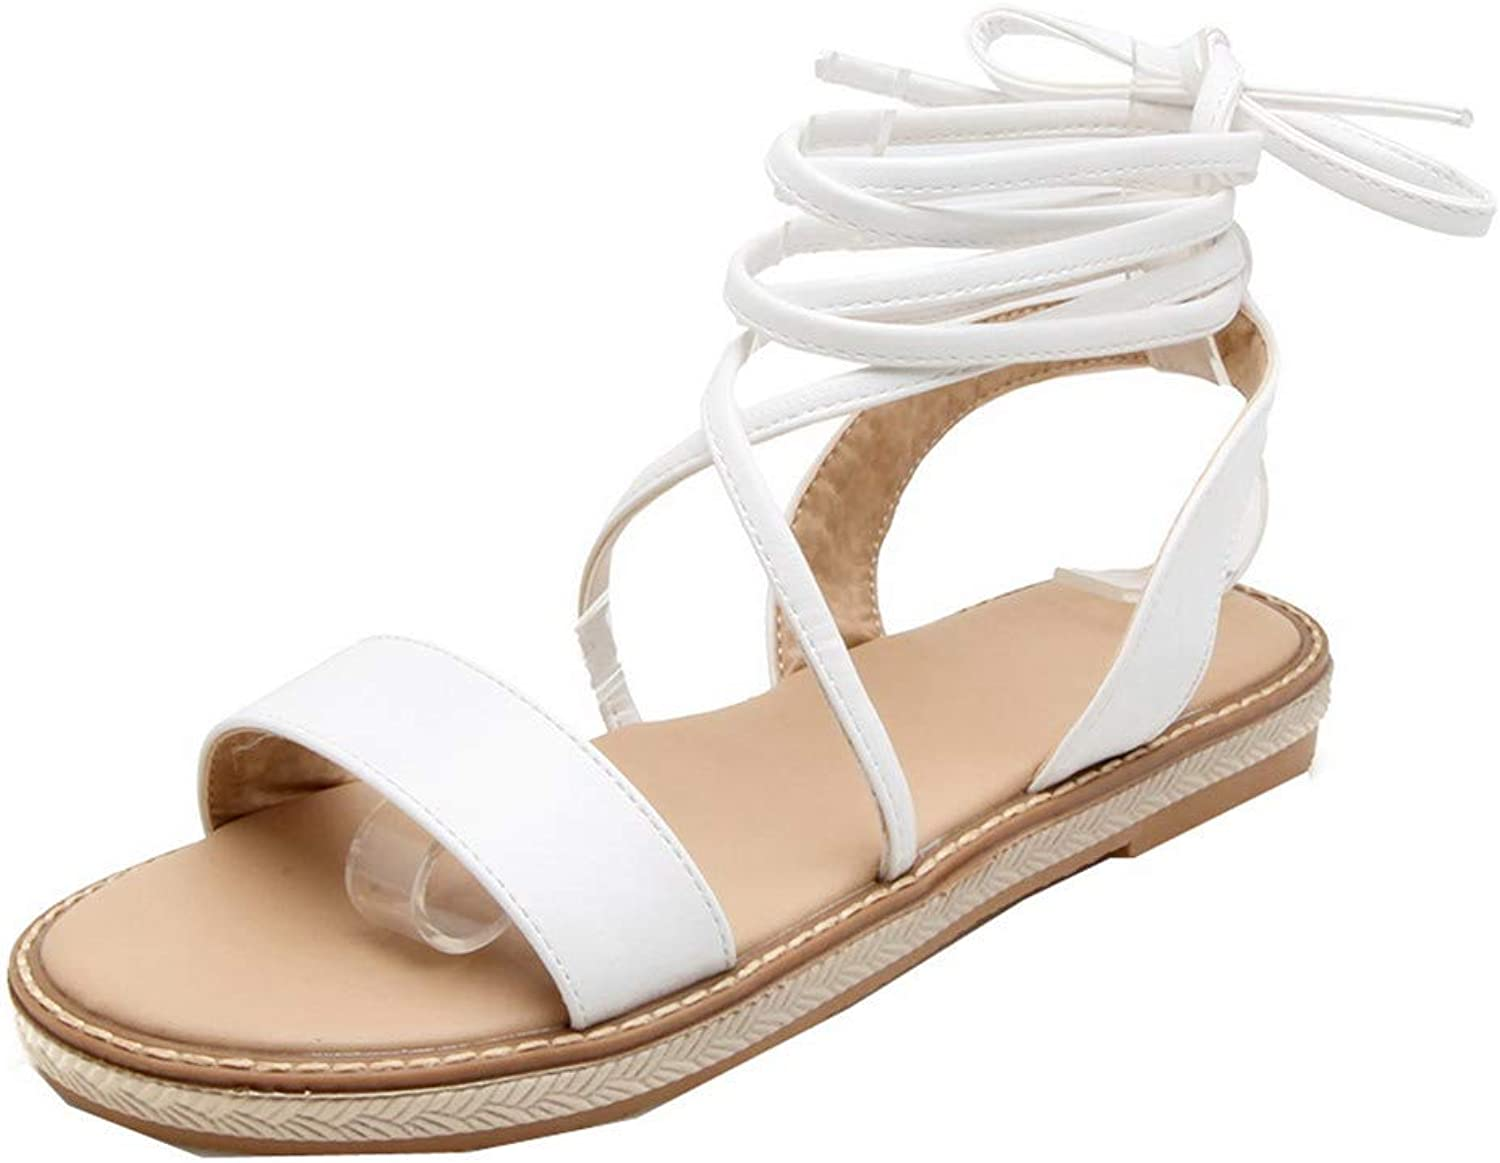 WeenFashion Women's Imitated Suede Lace-Up Open-Toe Low-Heels Solid Sandals, AMGLX010243